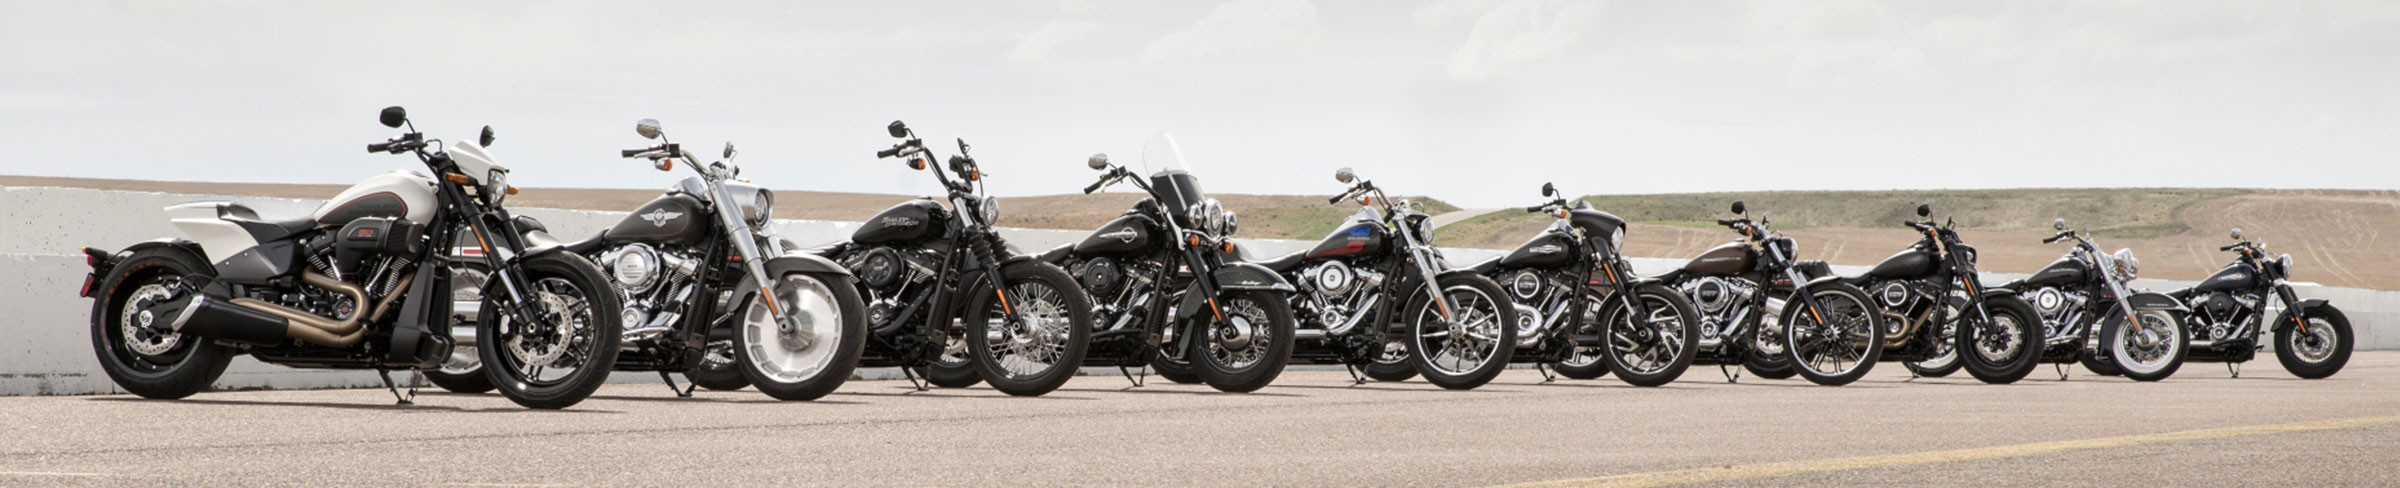 New Harley Davidson Softail for sale near Tulsa, OK